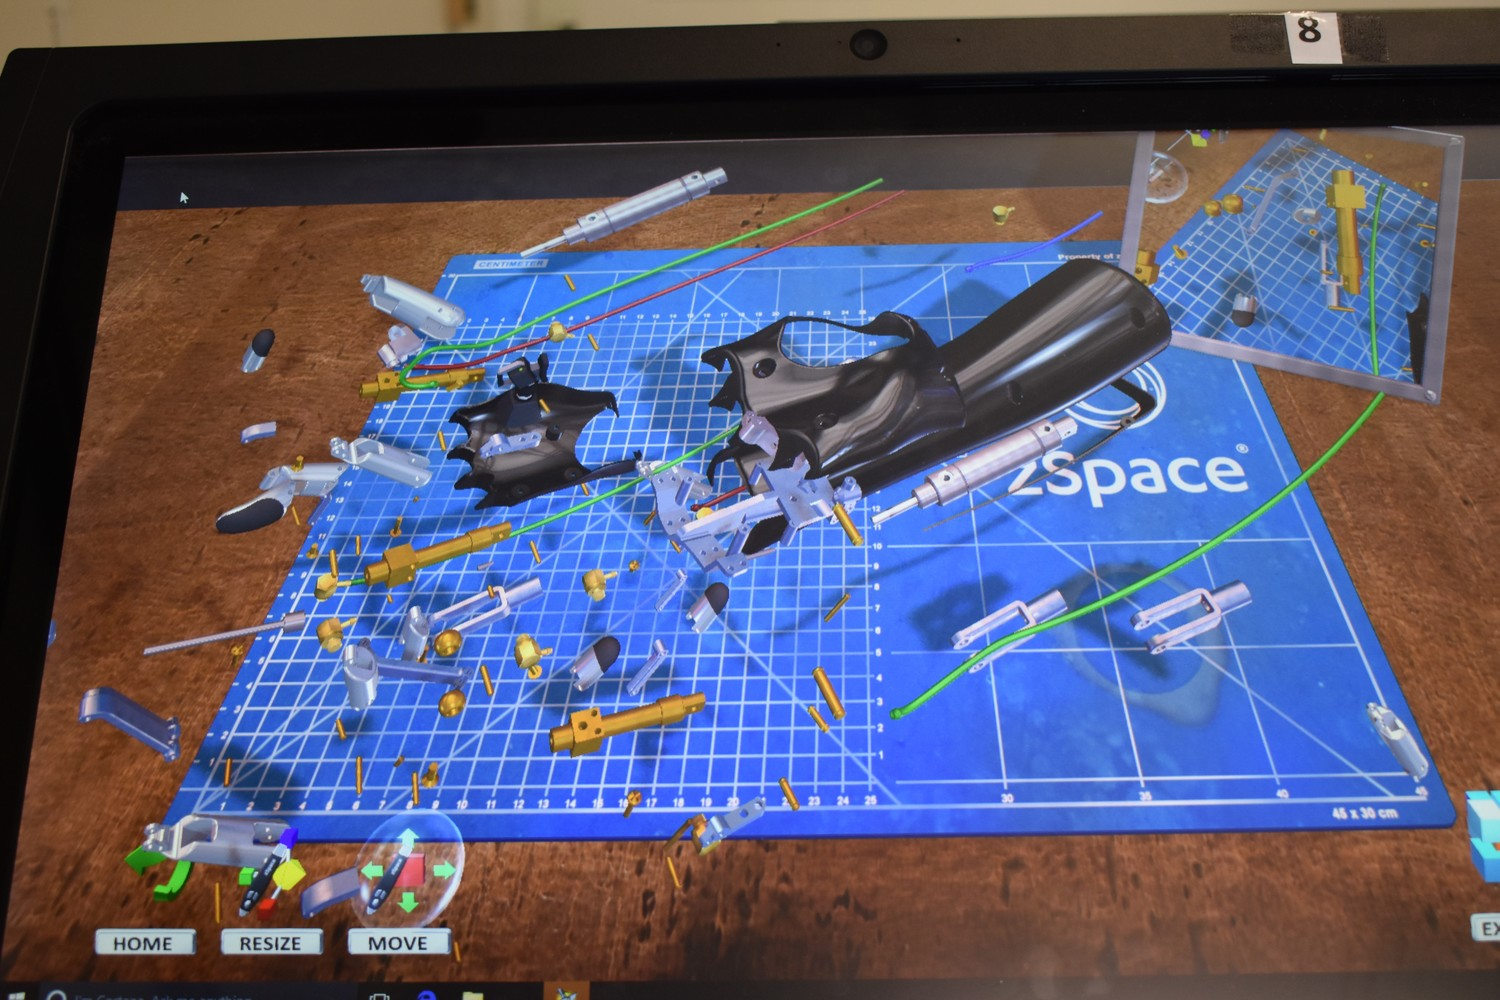 A robotic arm, which can be taken apart and assembled, is just one of the many programs on the zSpace computers.